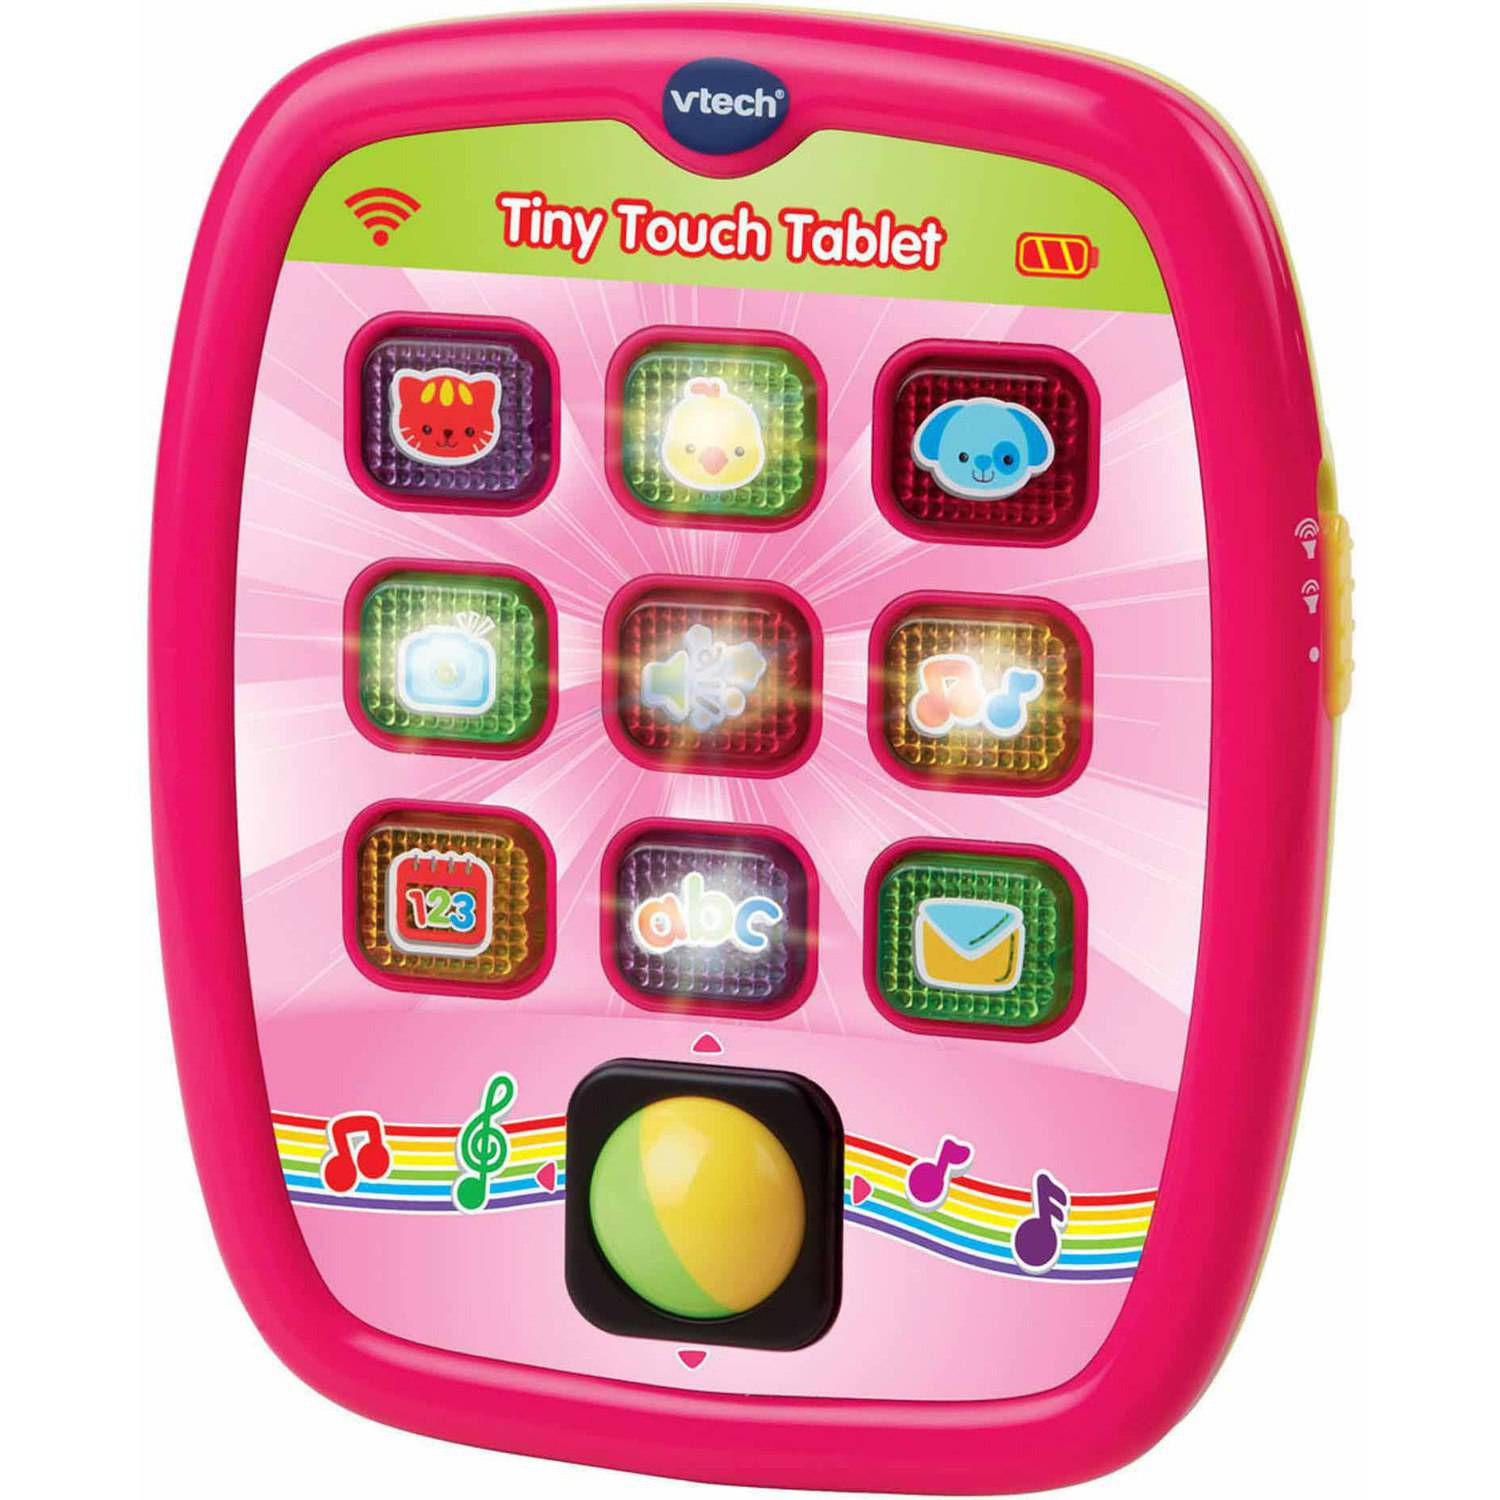 Tiny Touch Tablet, Pink